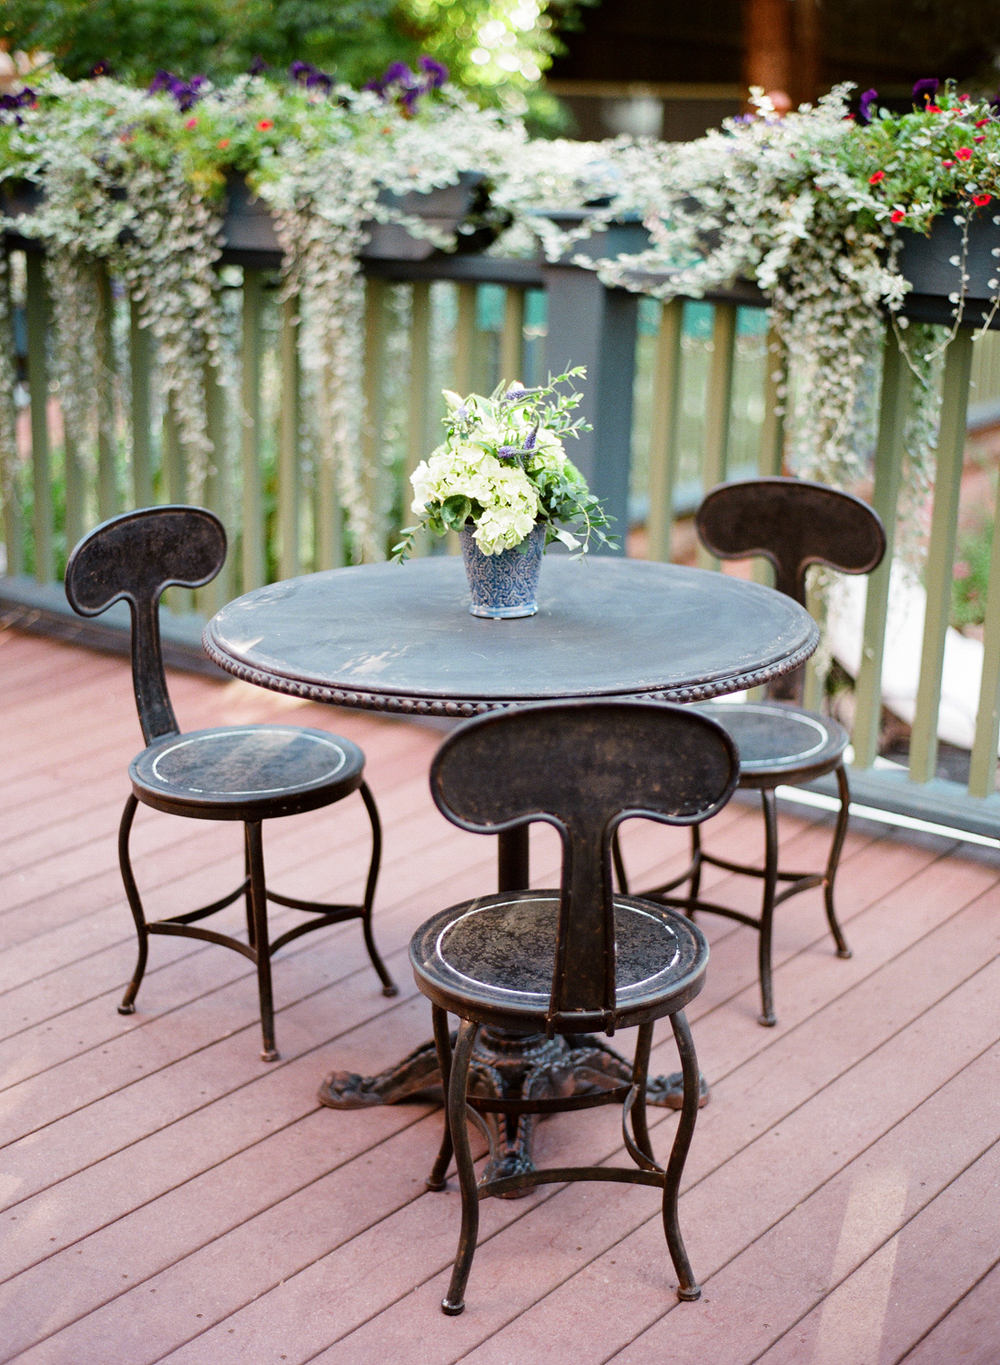 Iron Patio Table with Flower Arrangement